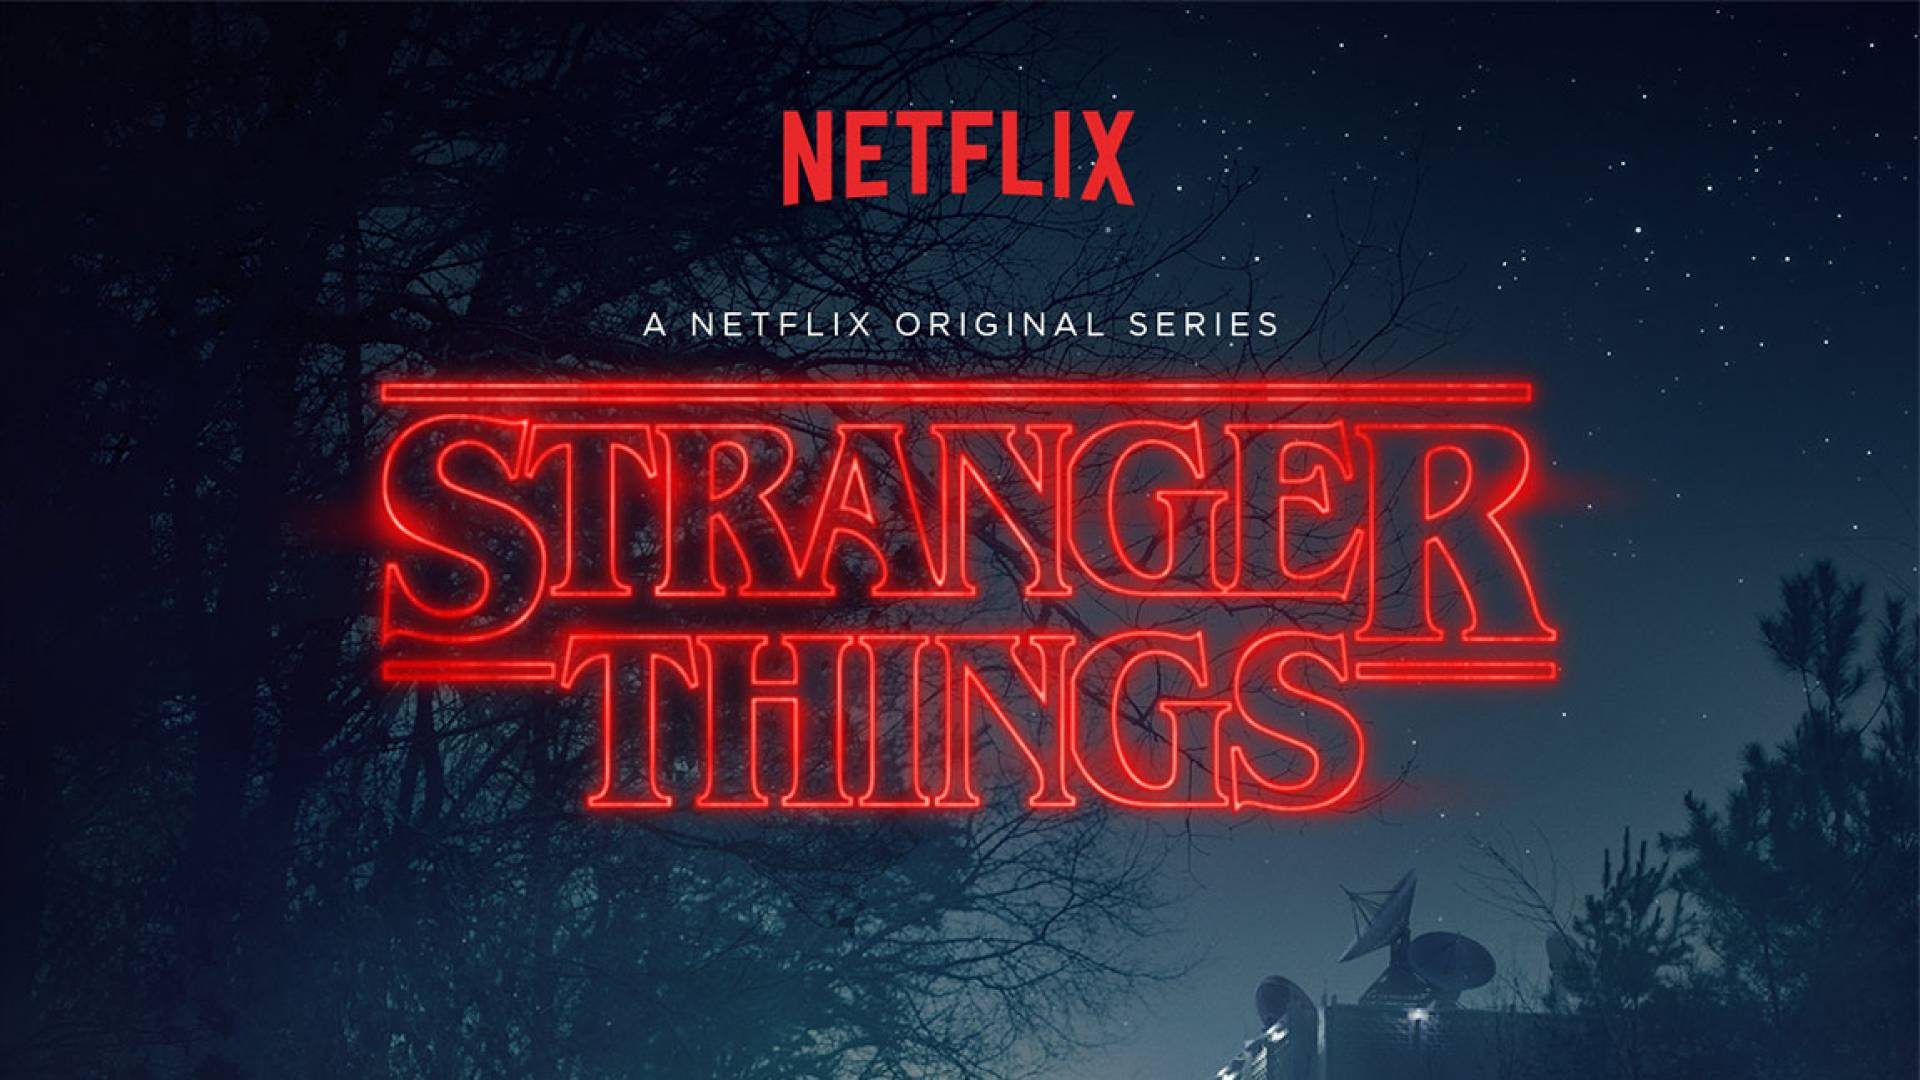 Stranger Things Wallpapers Picture Hd Picturez The Ramenswag